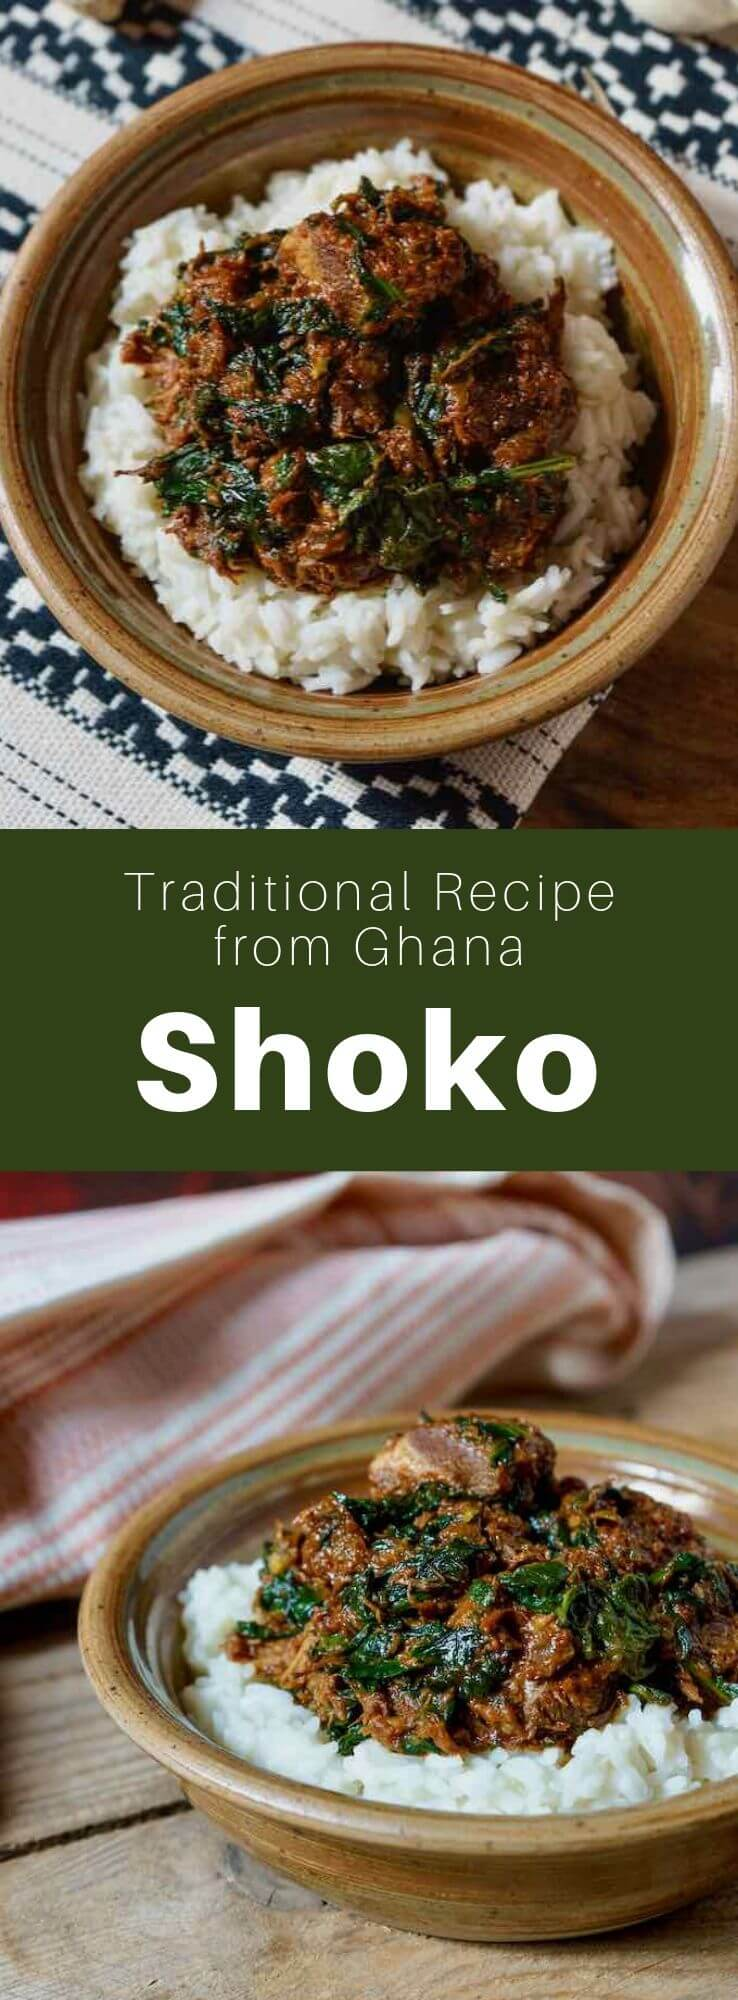 Shoko is a delicious traditional spiced stew from Ghana in West Africa. It is prepared with beef, spinach, as well as tomatoes. #Ghana #GhanaianCuisine #GhanaianFood #GhanaianRecipe #AfricanCuisine #AfricanFood #AfricanRecipe #WorldCuisine #196flavors